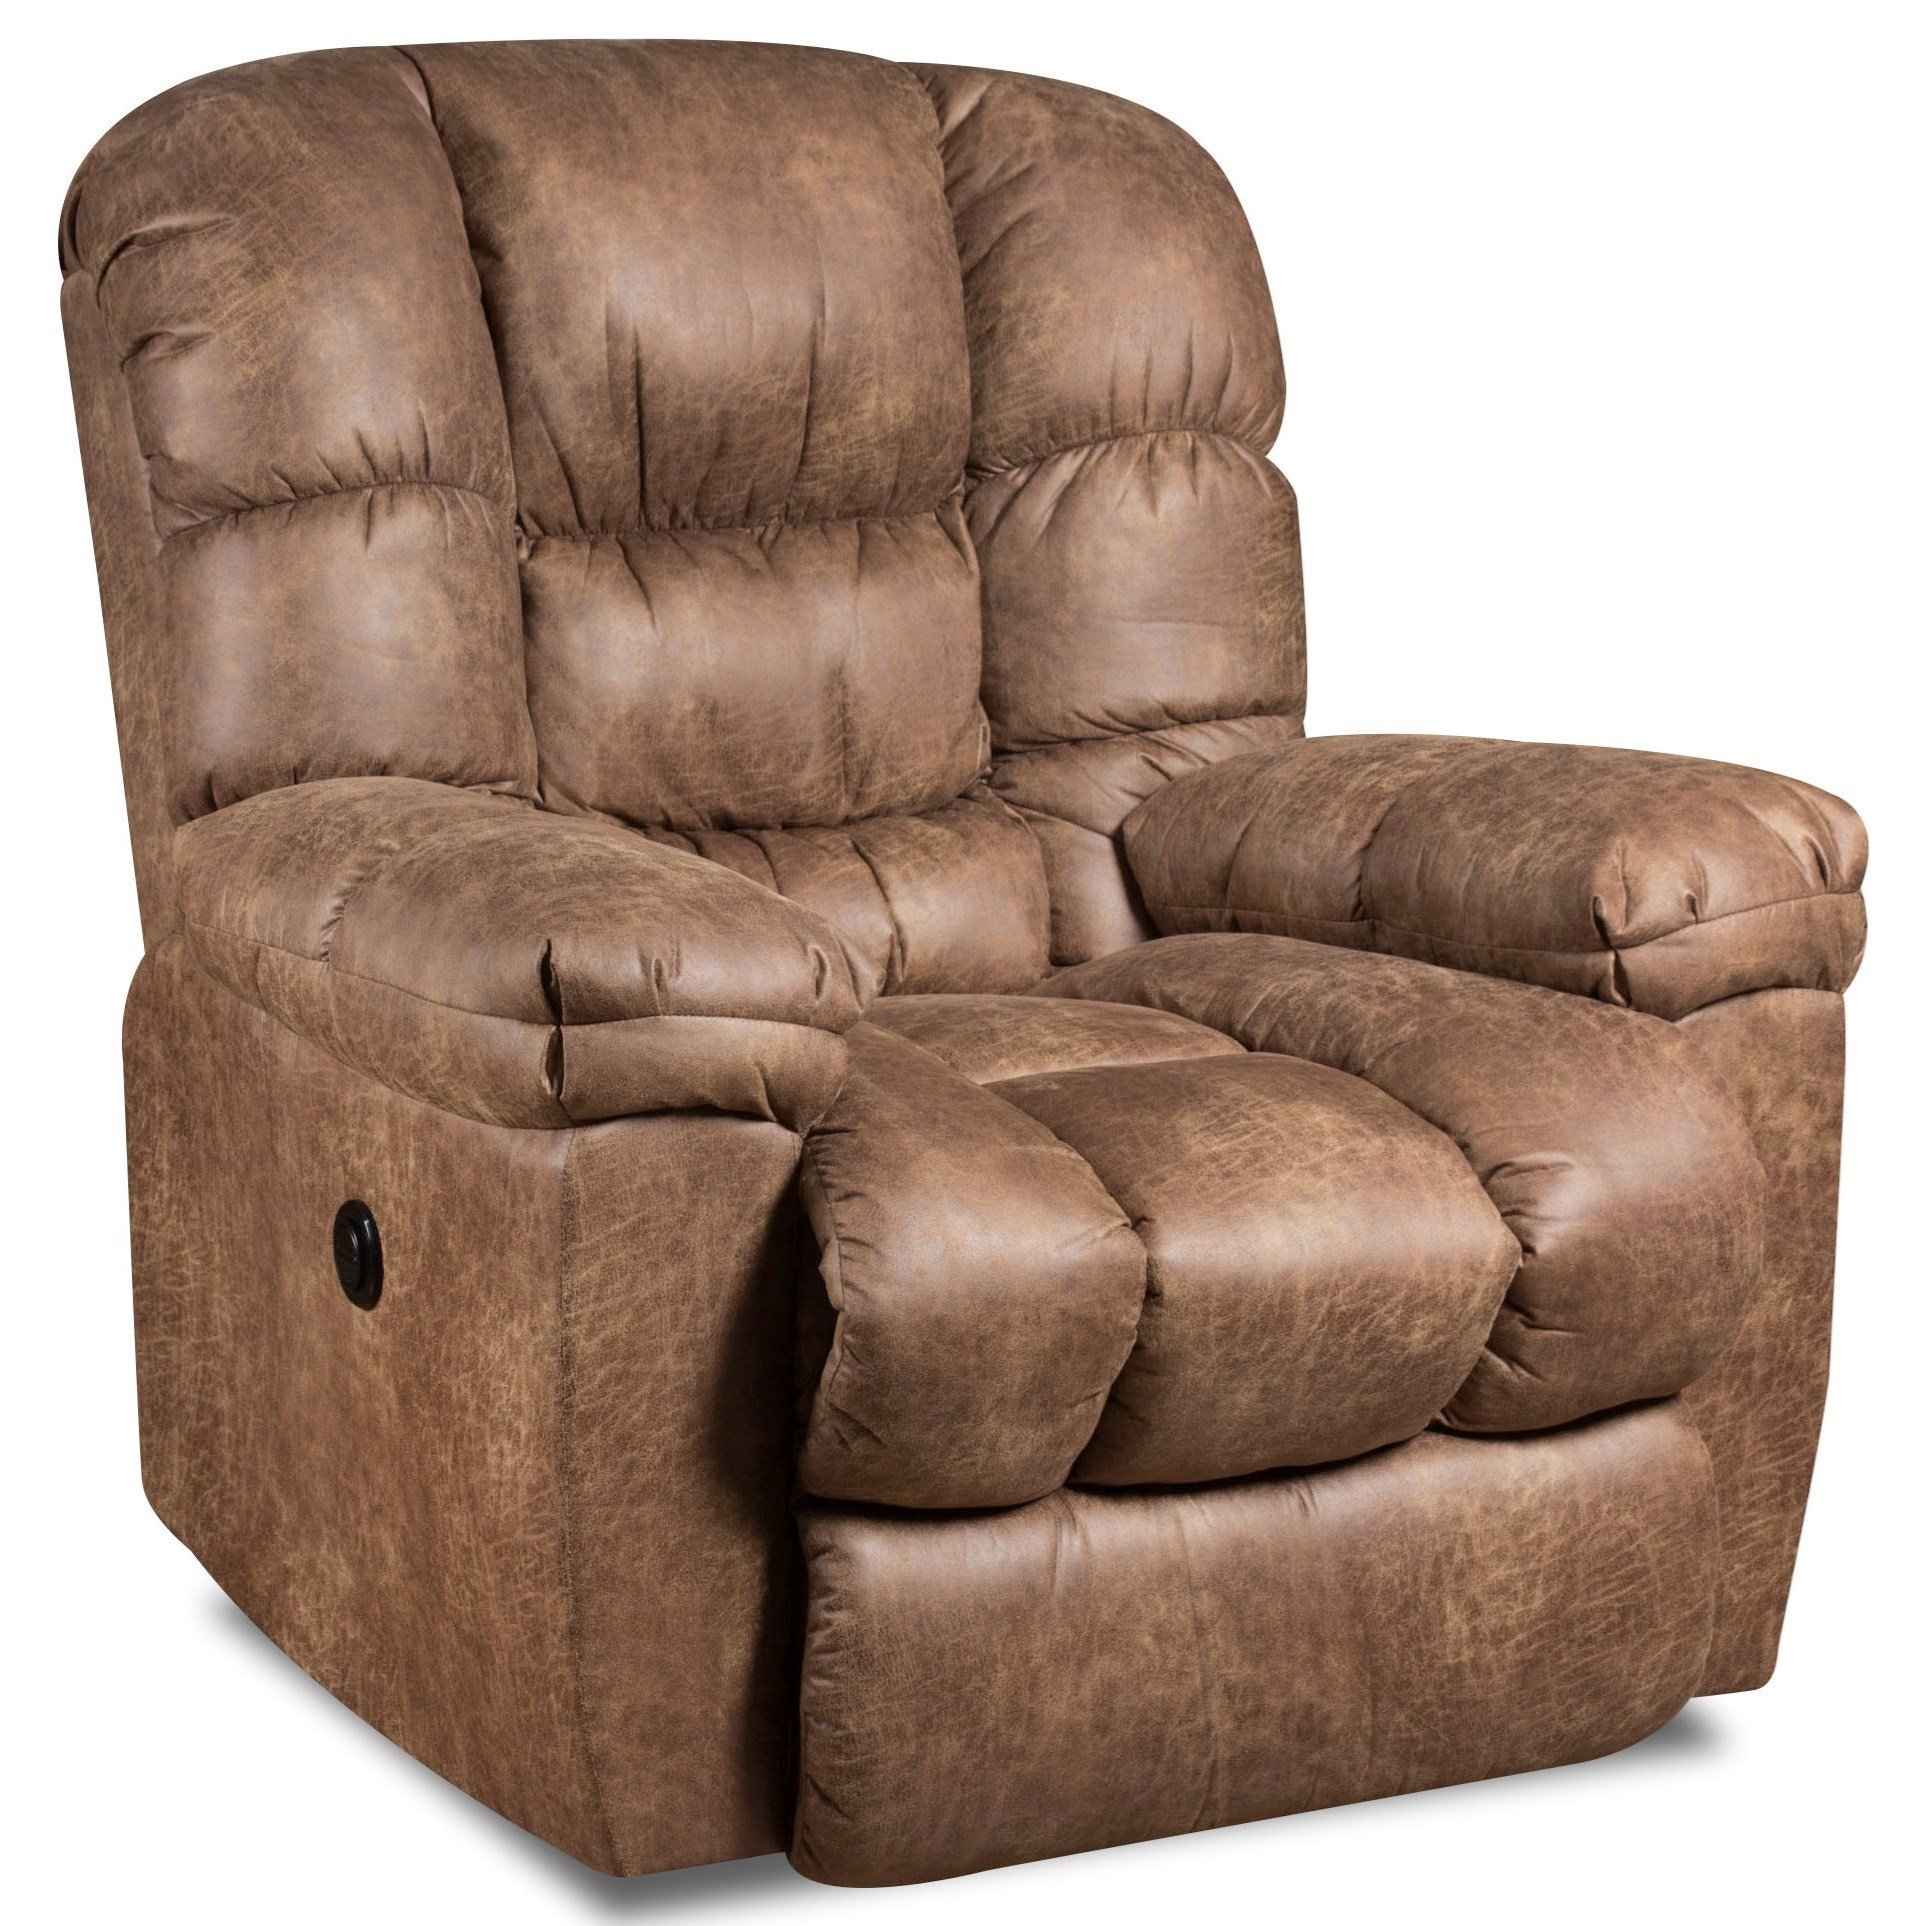 American Furniture 9550 Recliner with Casual Sophisticated Furniture Style - Prime Brothers Furniture - Three Way Recliners  sc 1 st  Prime Brothers Furniture & American Furniture 9550 Recliner with Casual Sophisticated ... islam-shia.org